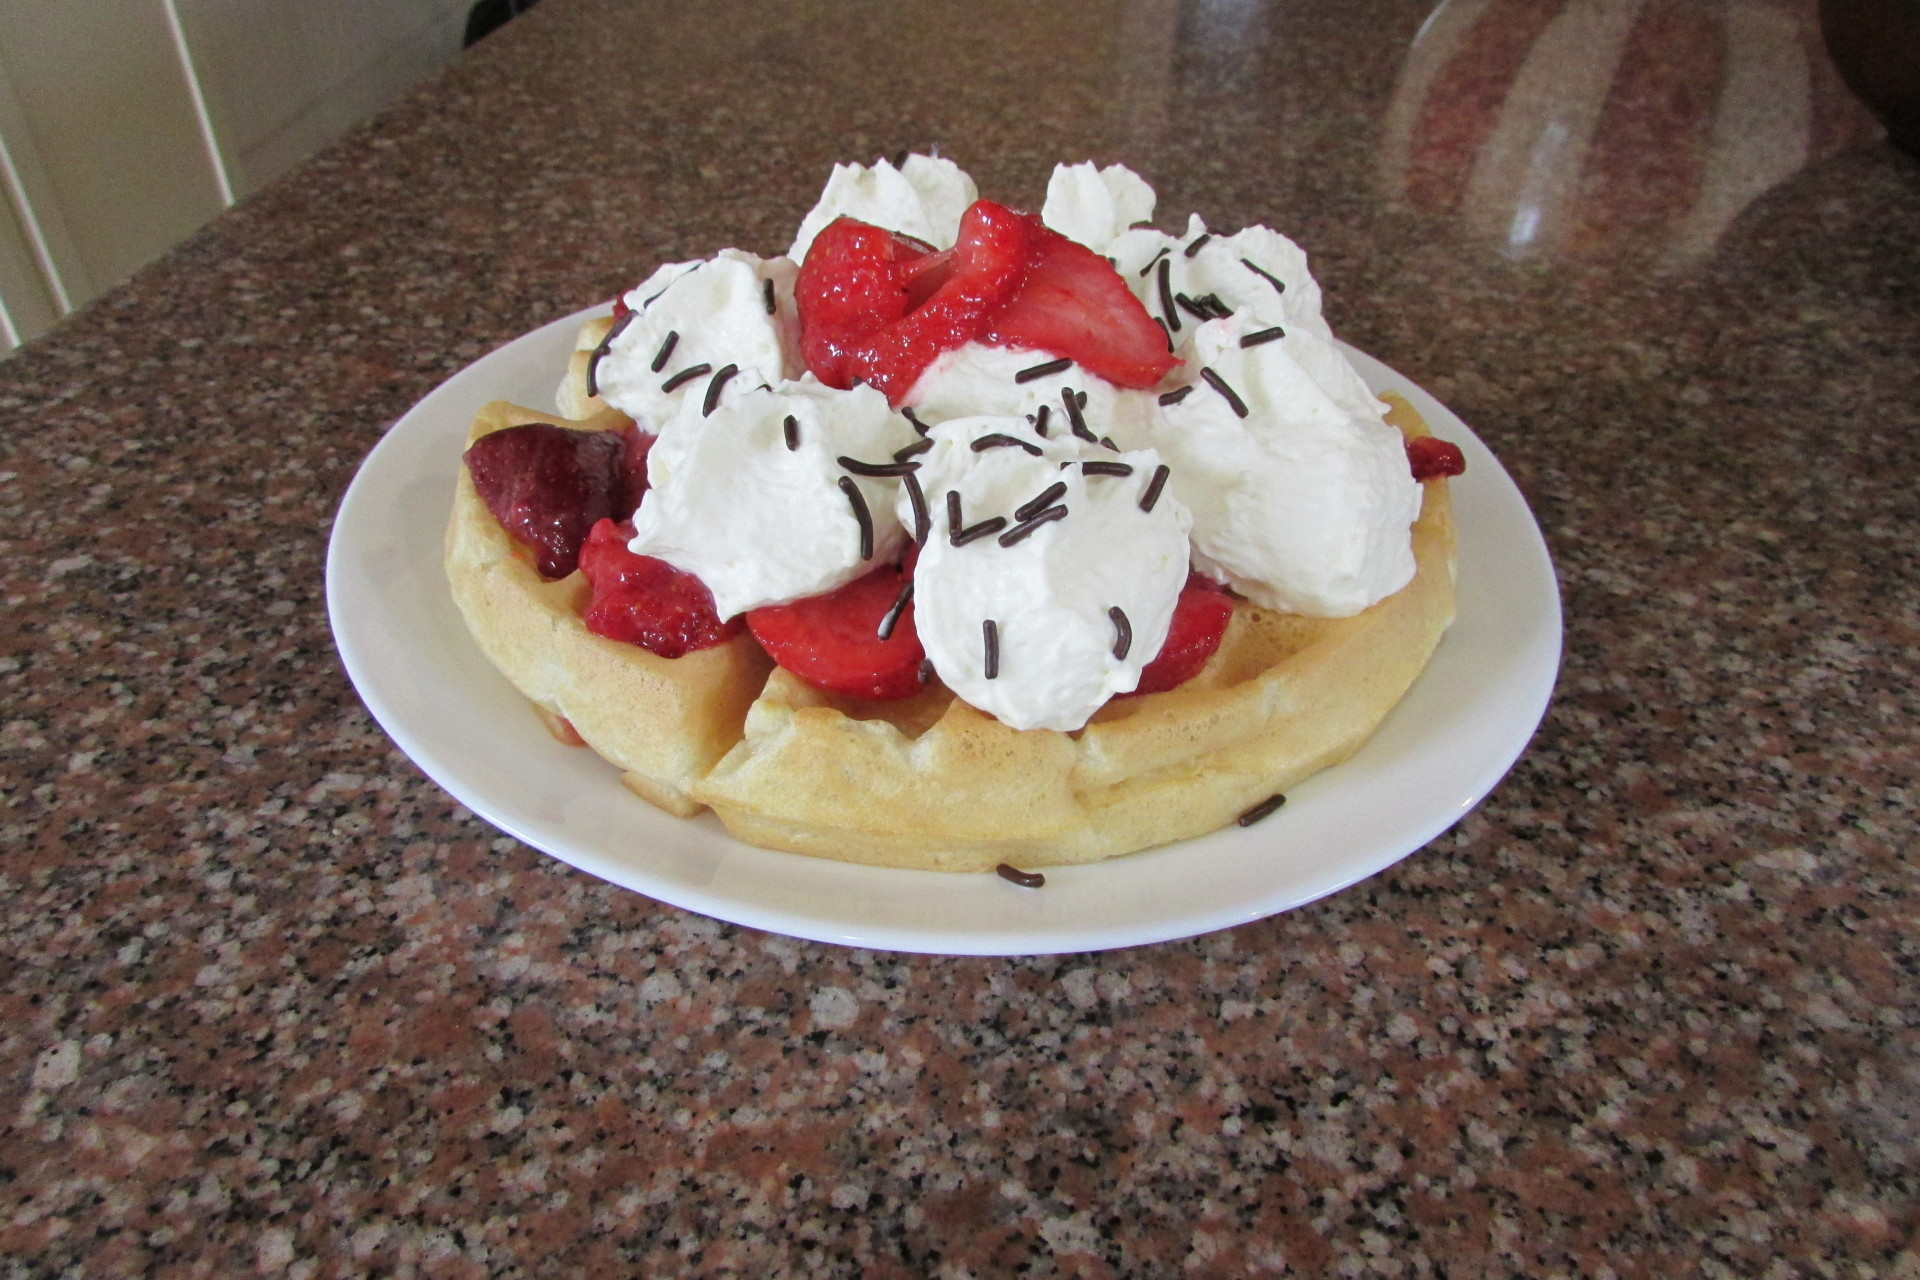 Strawberries blueberries raspberries waffles